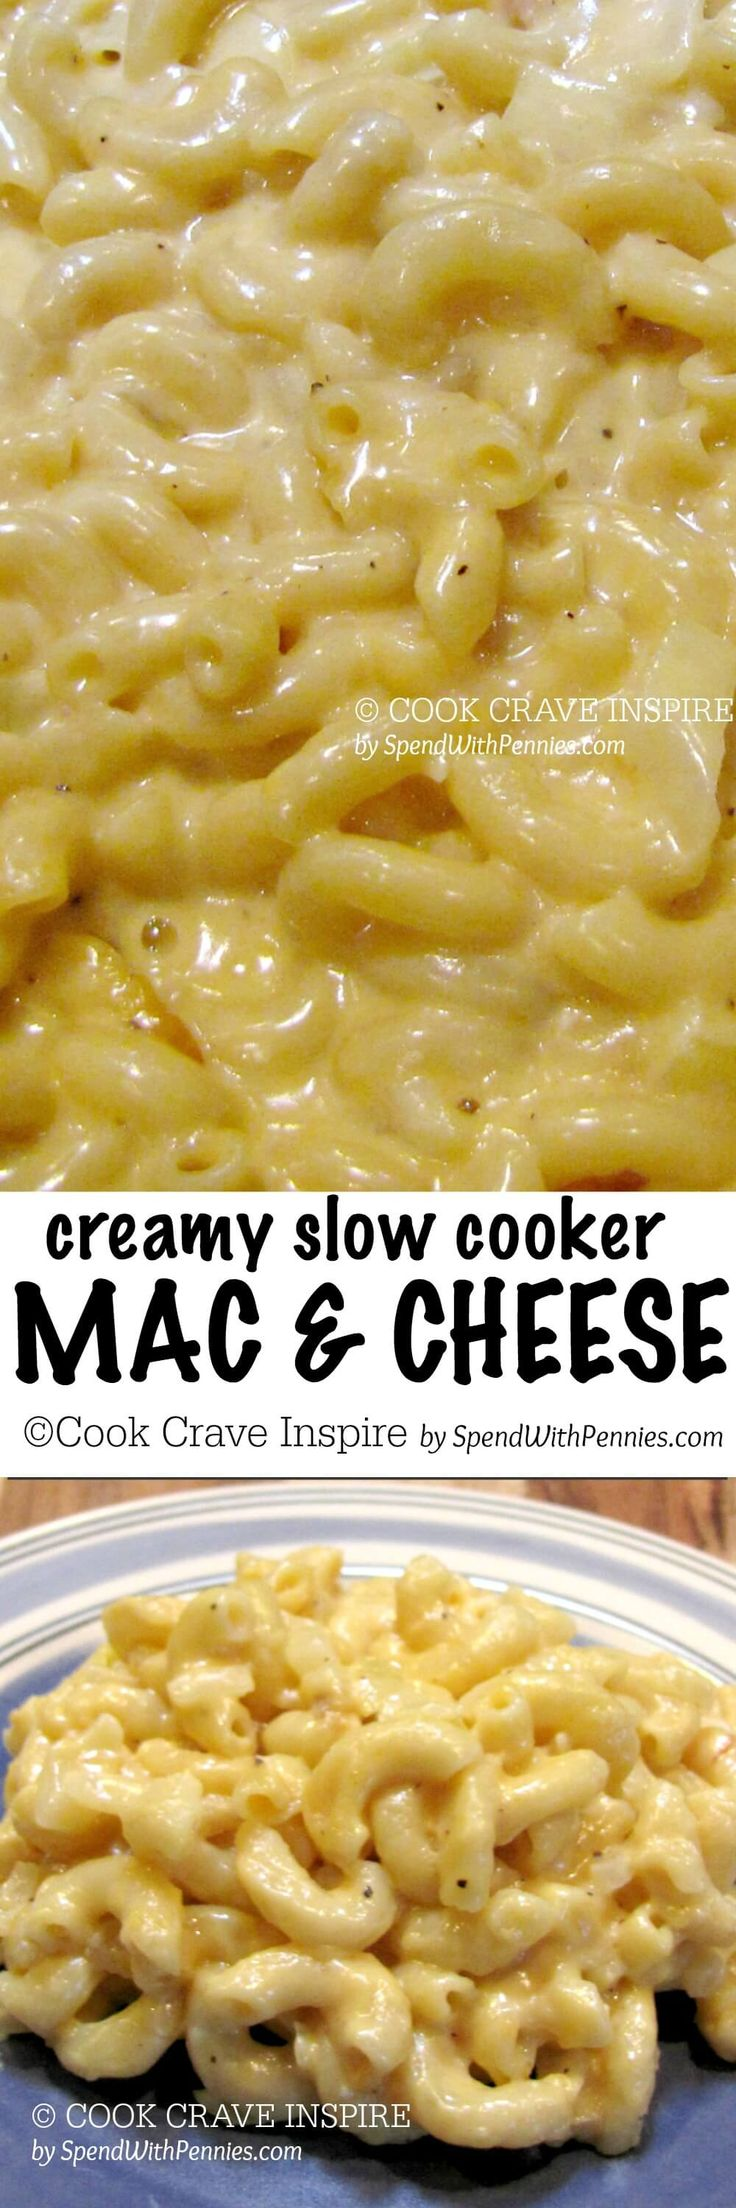 Ultra creamy Mac 'n Cheese.. this is one of my favorite recipes of all time. I've made it so many times and everyone in my family raves about it!